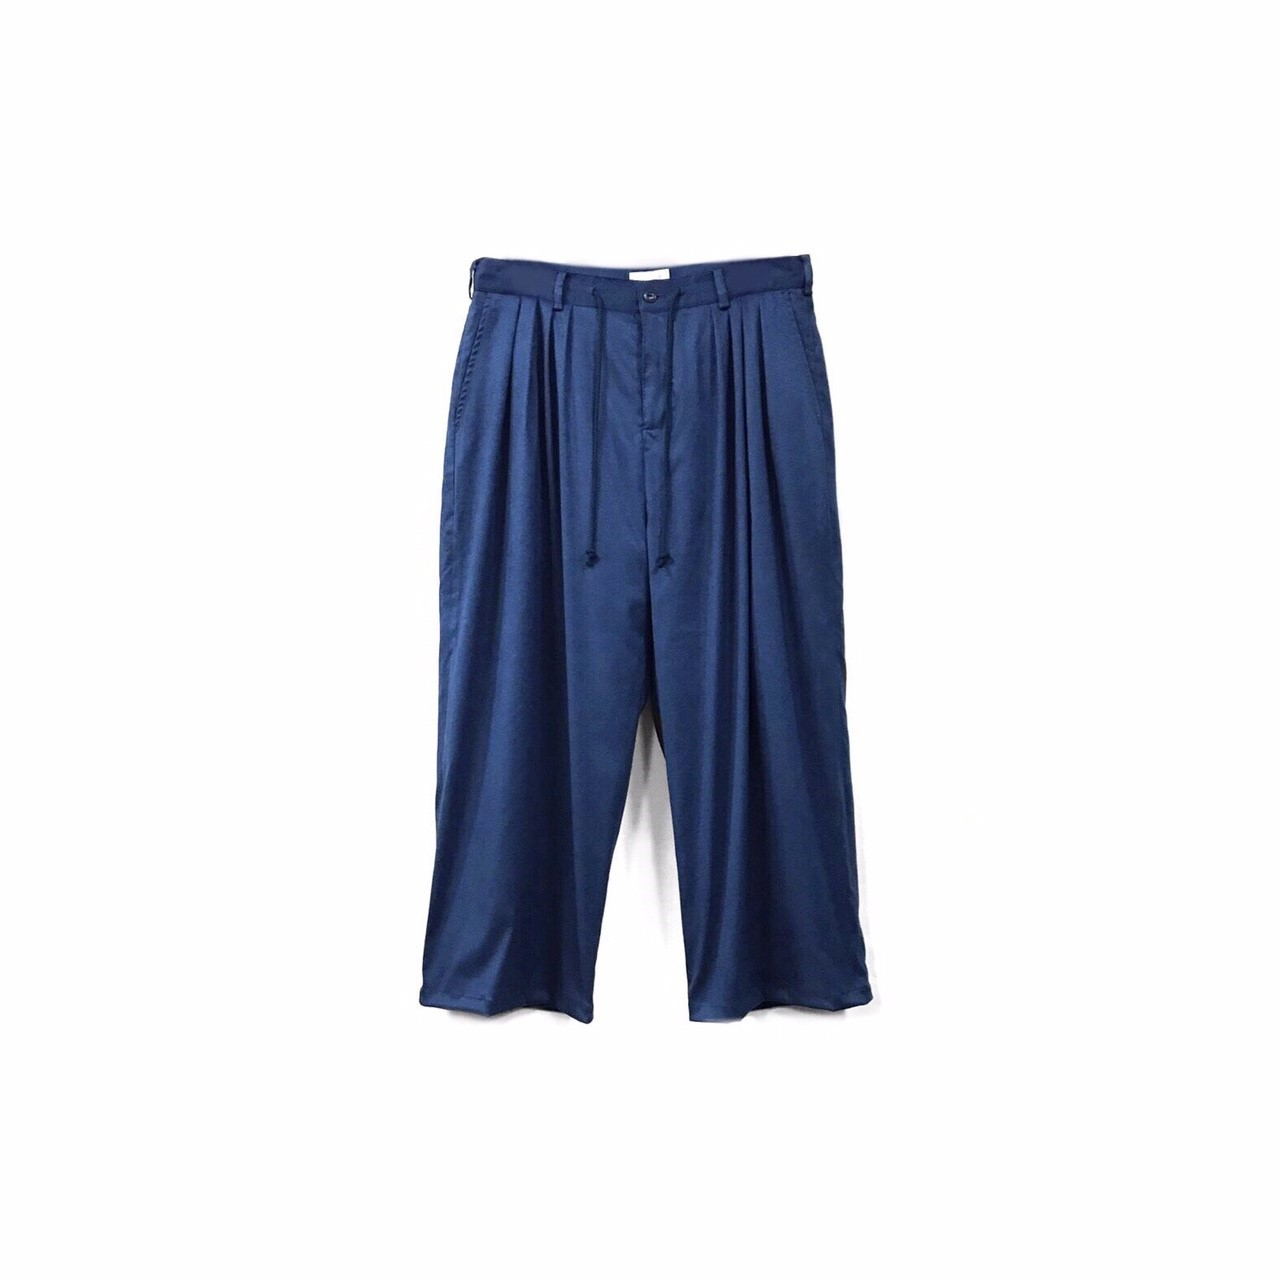 yotsuba - Fake Suede 4tuck Wide Pants / Blue ¥26000+tax